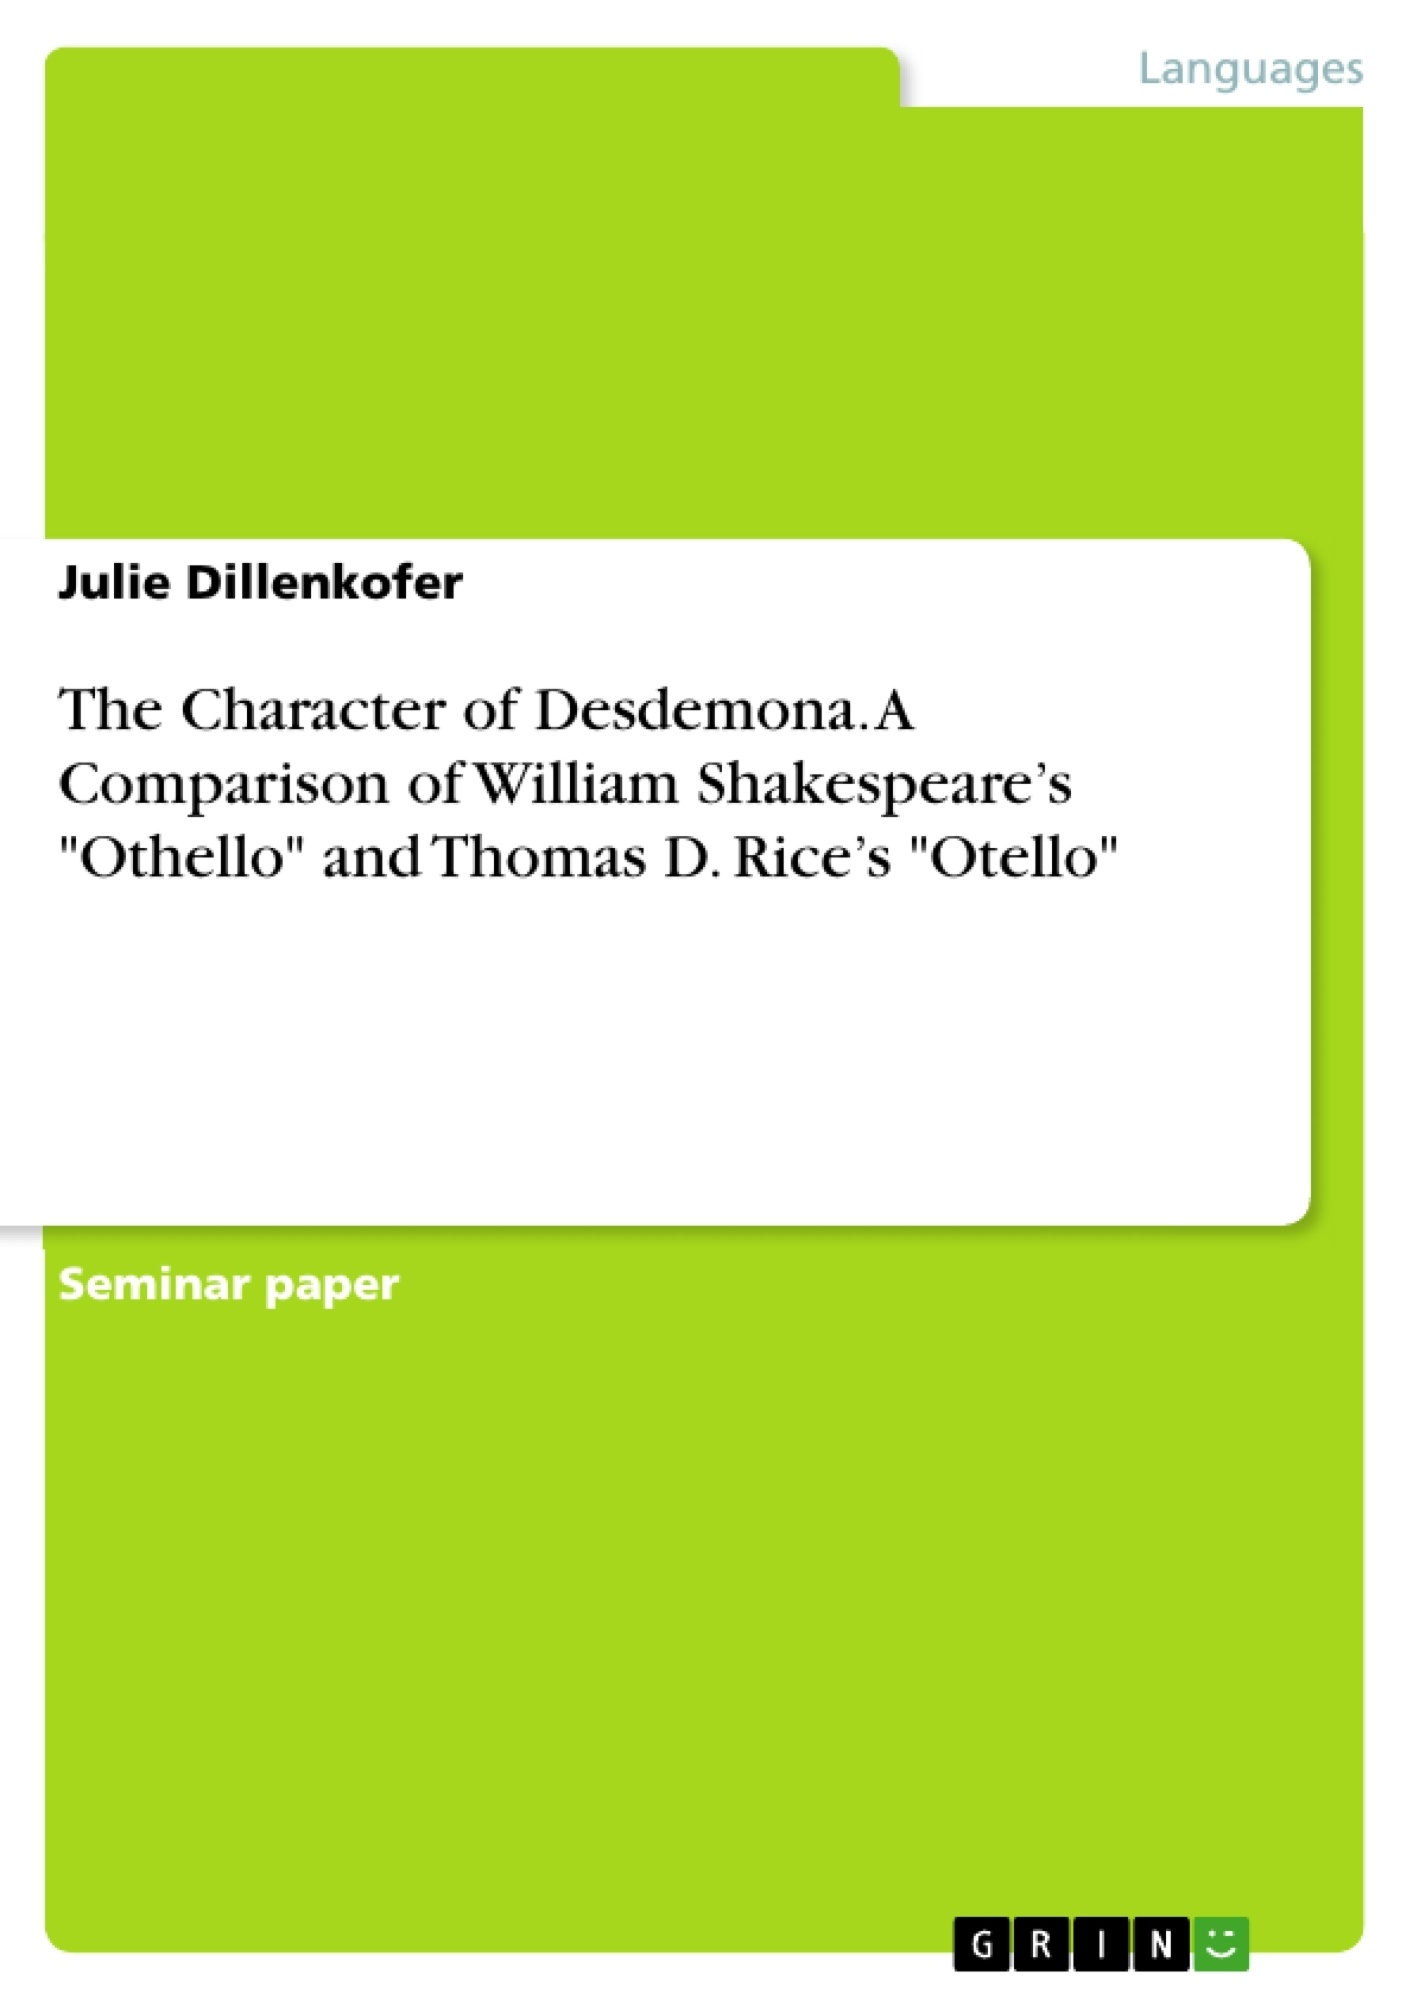 the character of desdemona a comparison of william shakespeare s the character of desdemona a comparison of william shakespeare s publish your master s thesis bachelor s thesis essay or term paper